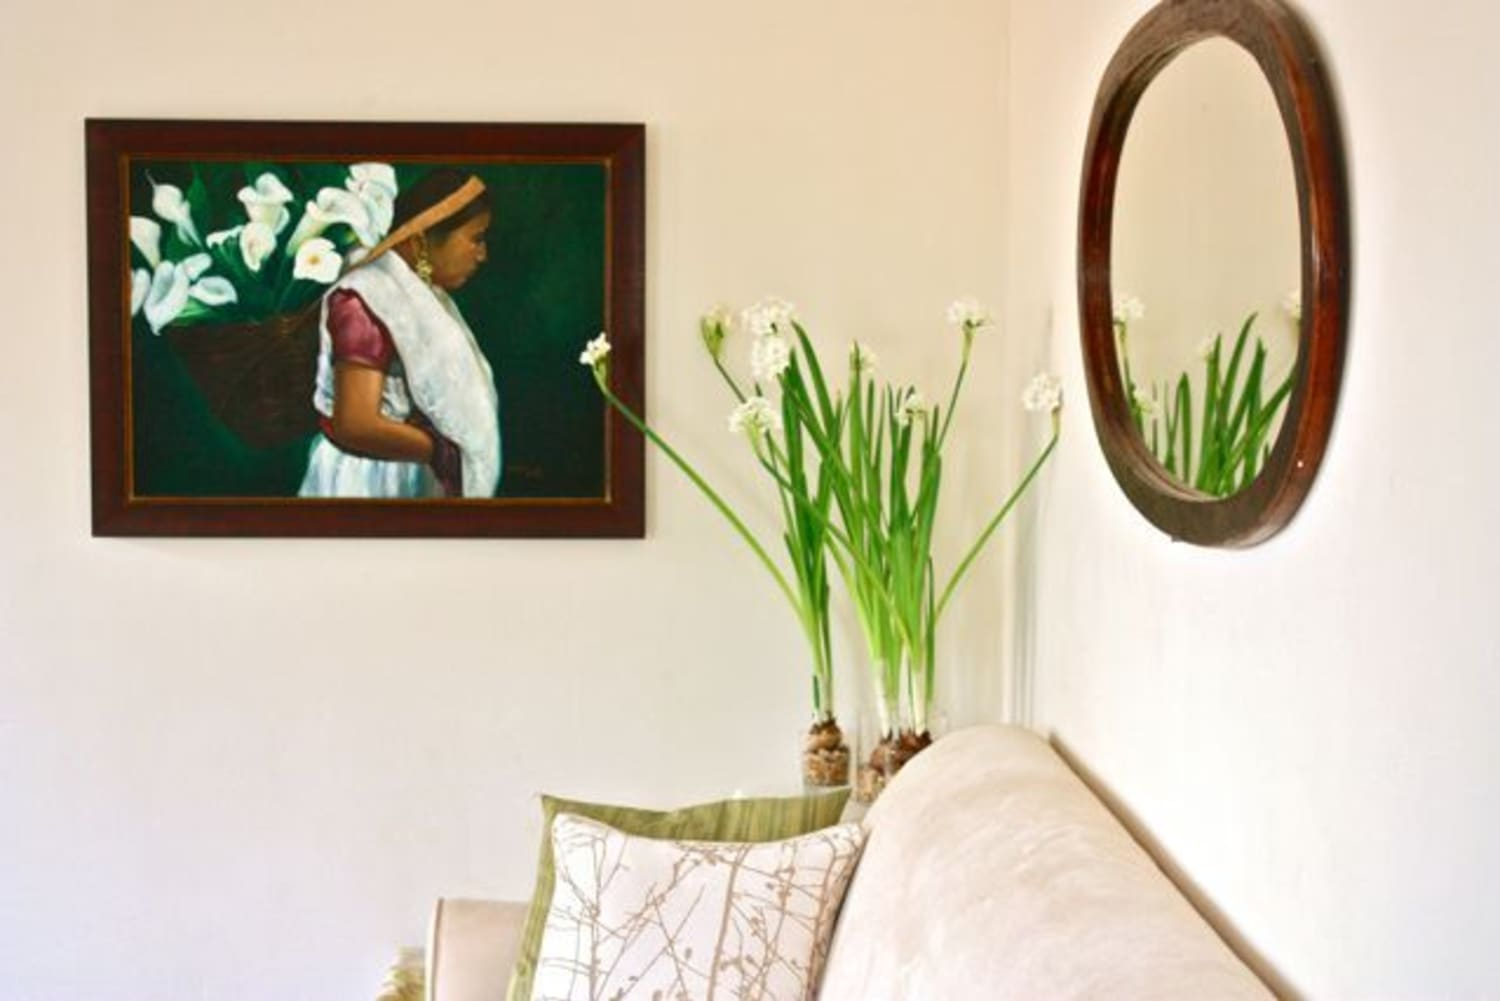 How to Grow and Care for Paperwhites Indoors (and Make It Feel Like Spring Year-Round)